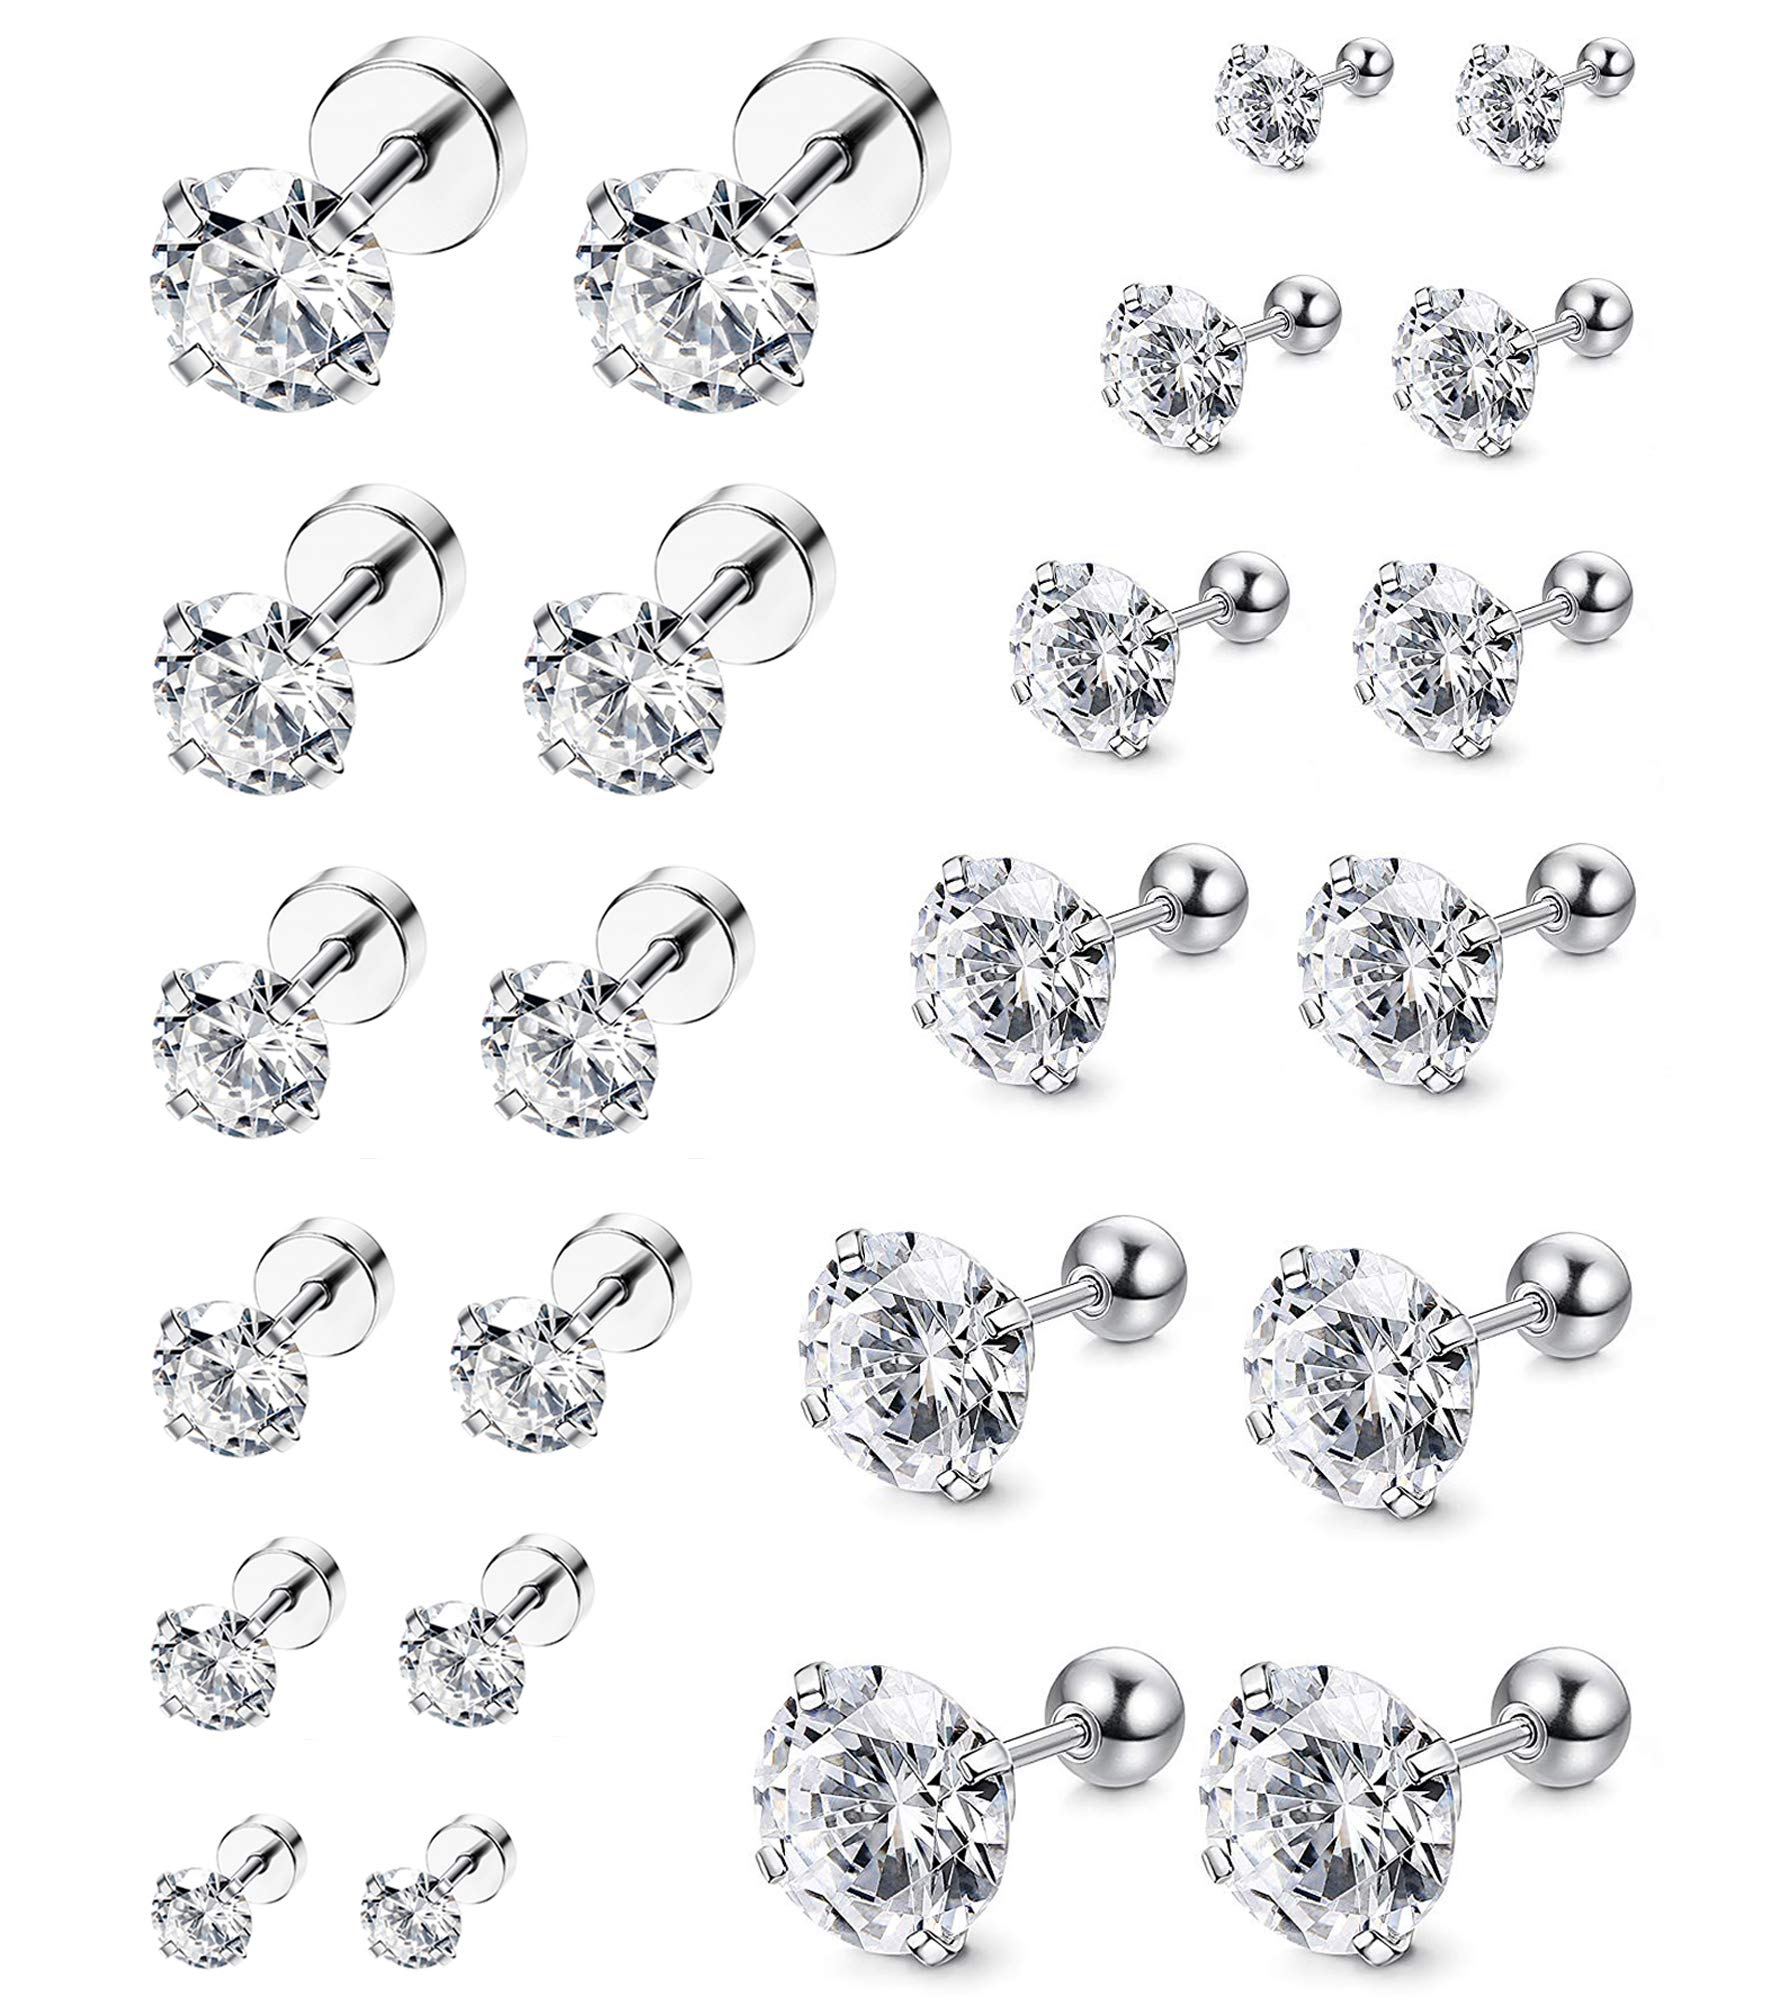 ORAZIO 12 Pairs 20G Stainless Steel Ear Stud Piercing Barbell Studs Earrings Round Cubic Zirconia Inlaid (E:12 Pairs,White 20G(0.8MM)) by ORAZIO